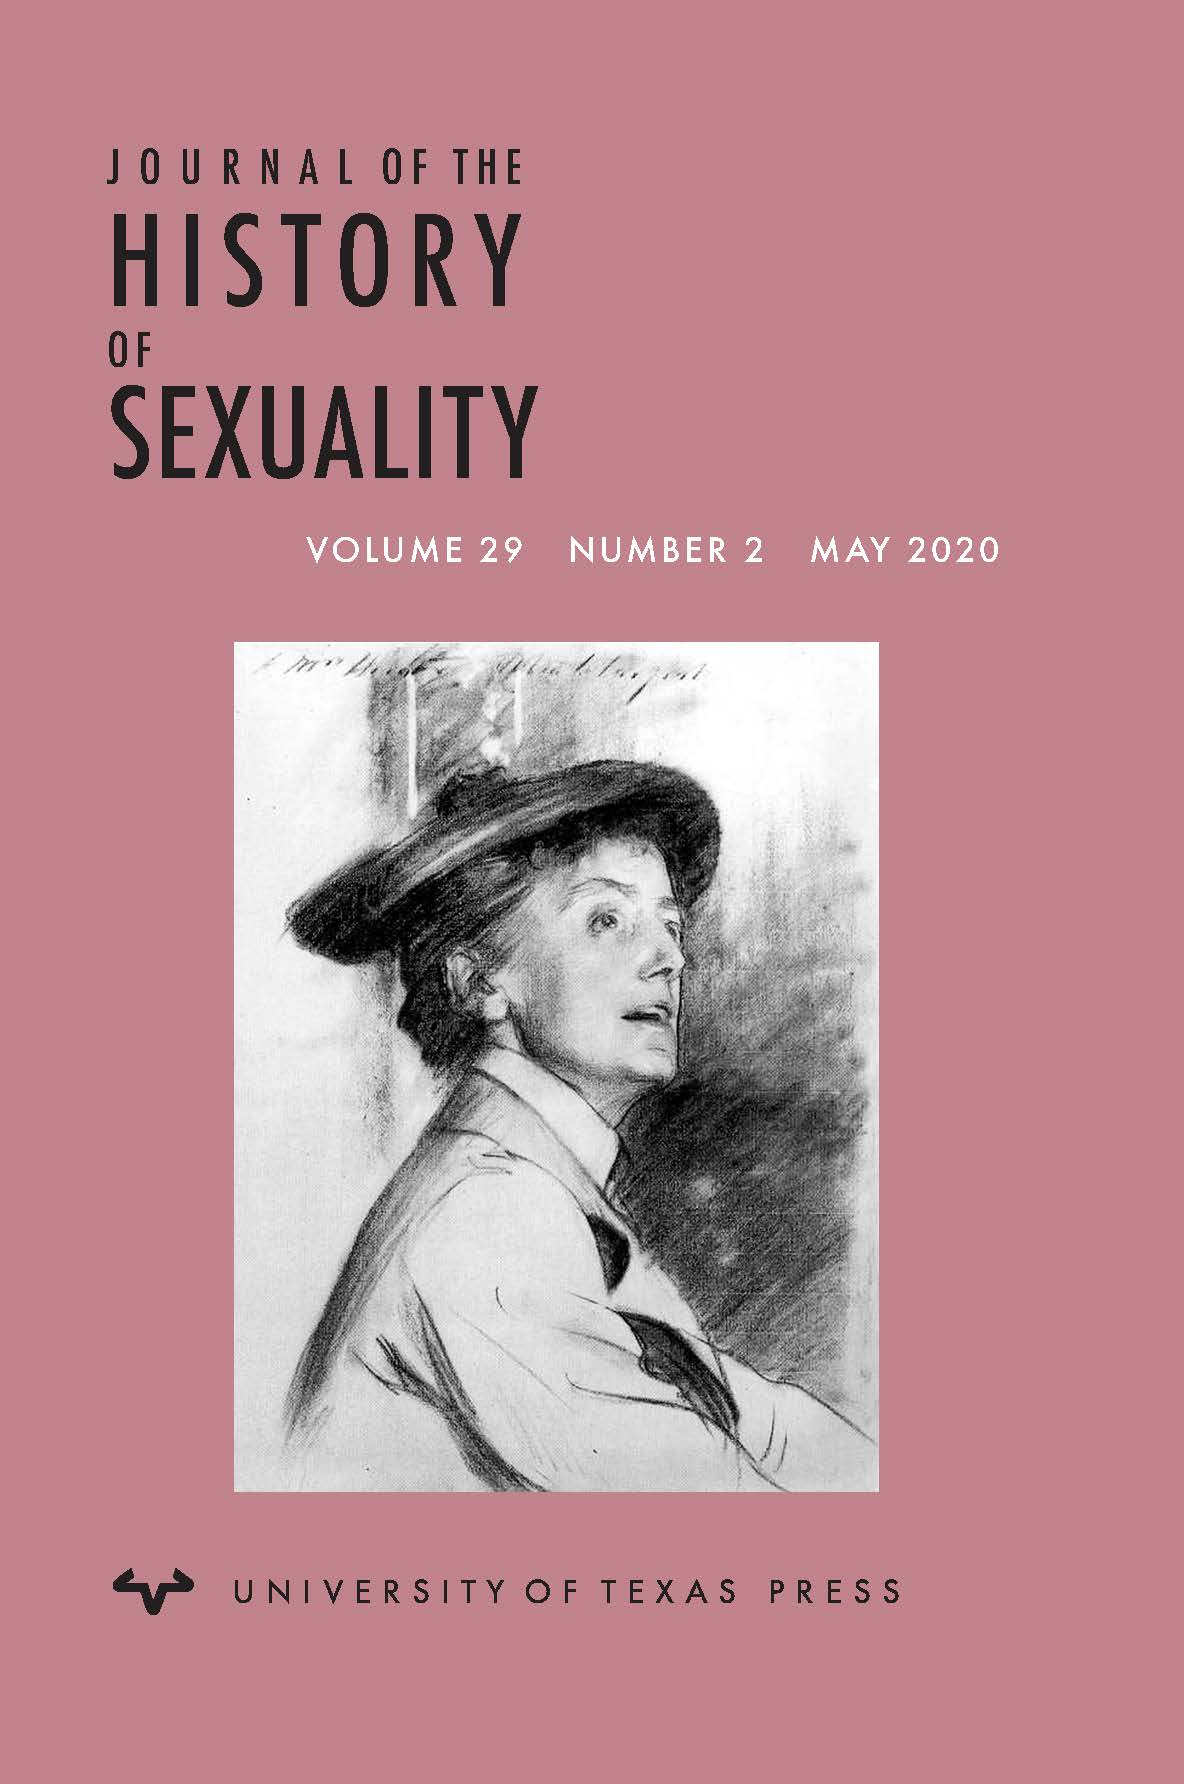 Journal of the History of Sexuality: Volume 29, Number 2, May 2020